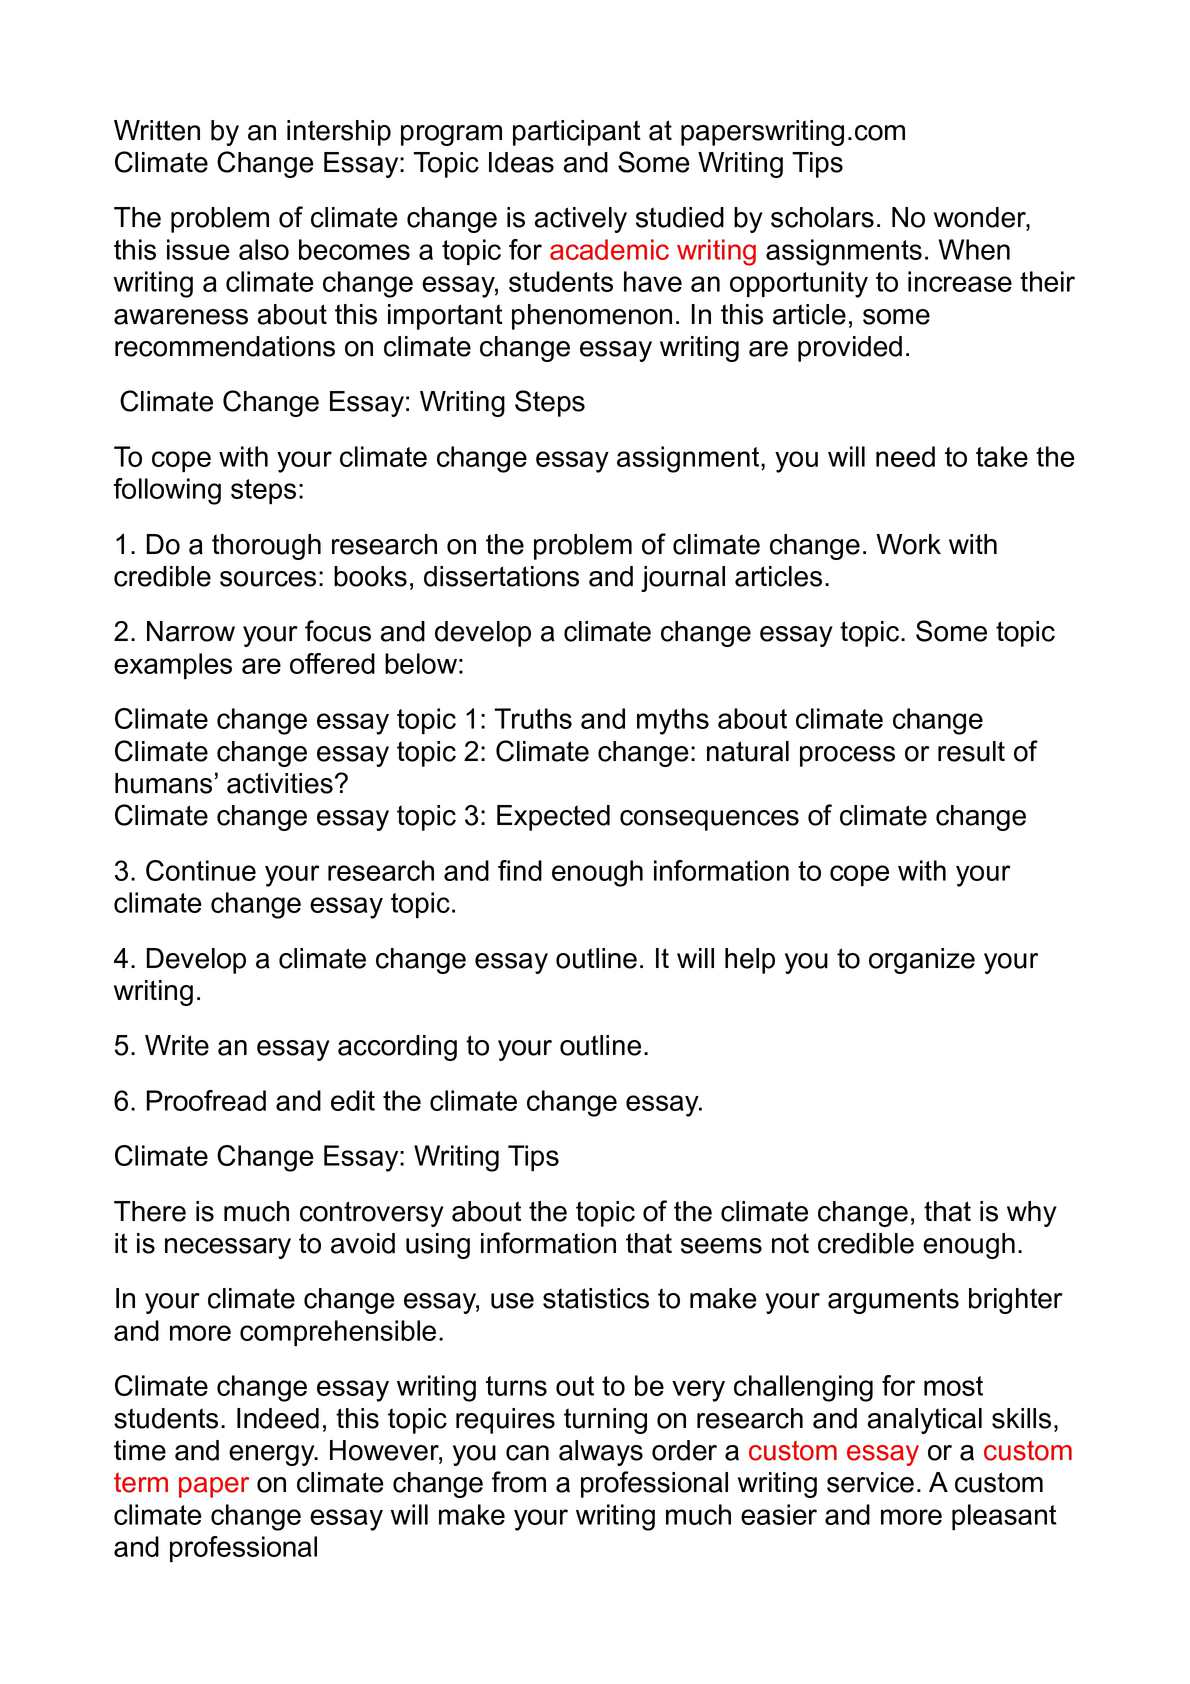 climate change essay questions View and download climate change essays examples also discover topics, titles, outlines, thesis statements, and conclusions for your climate change essay.